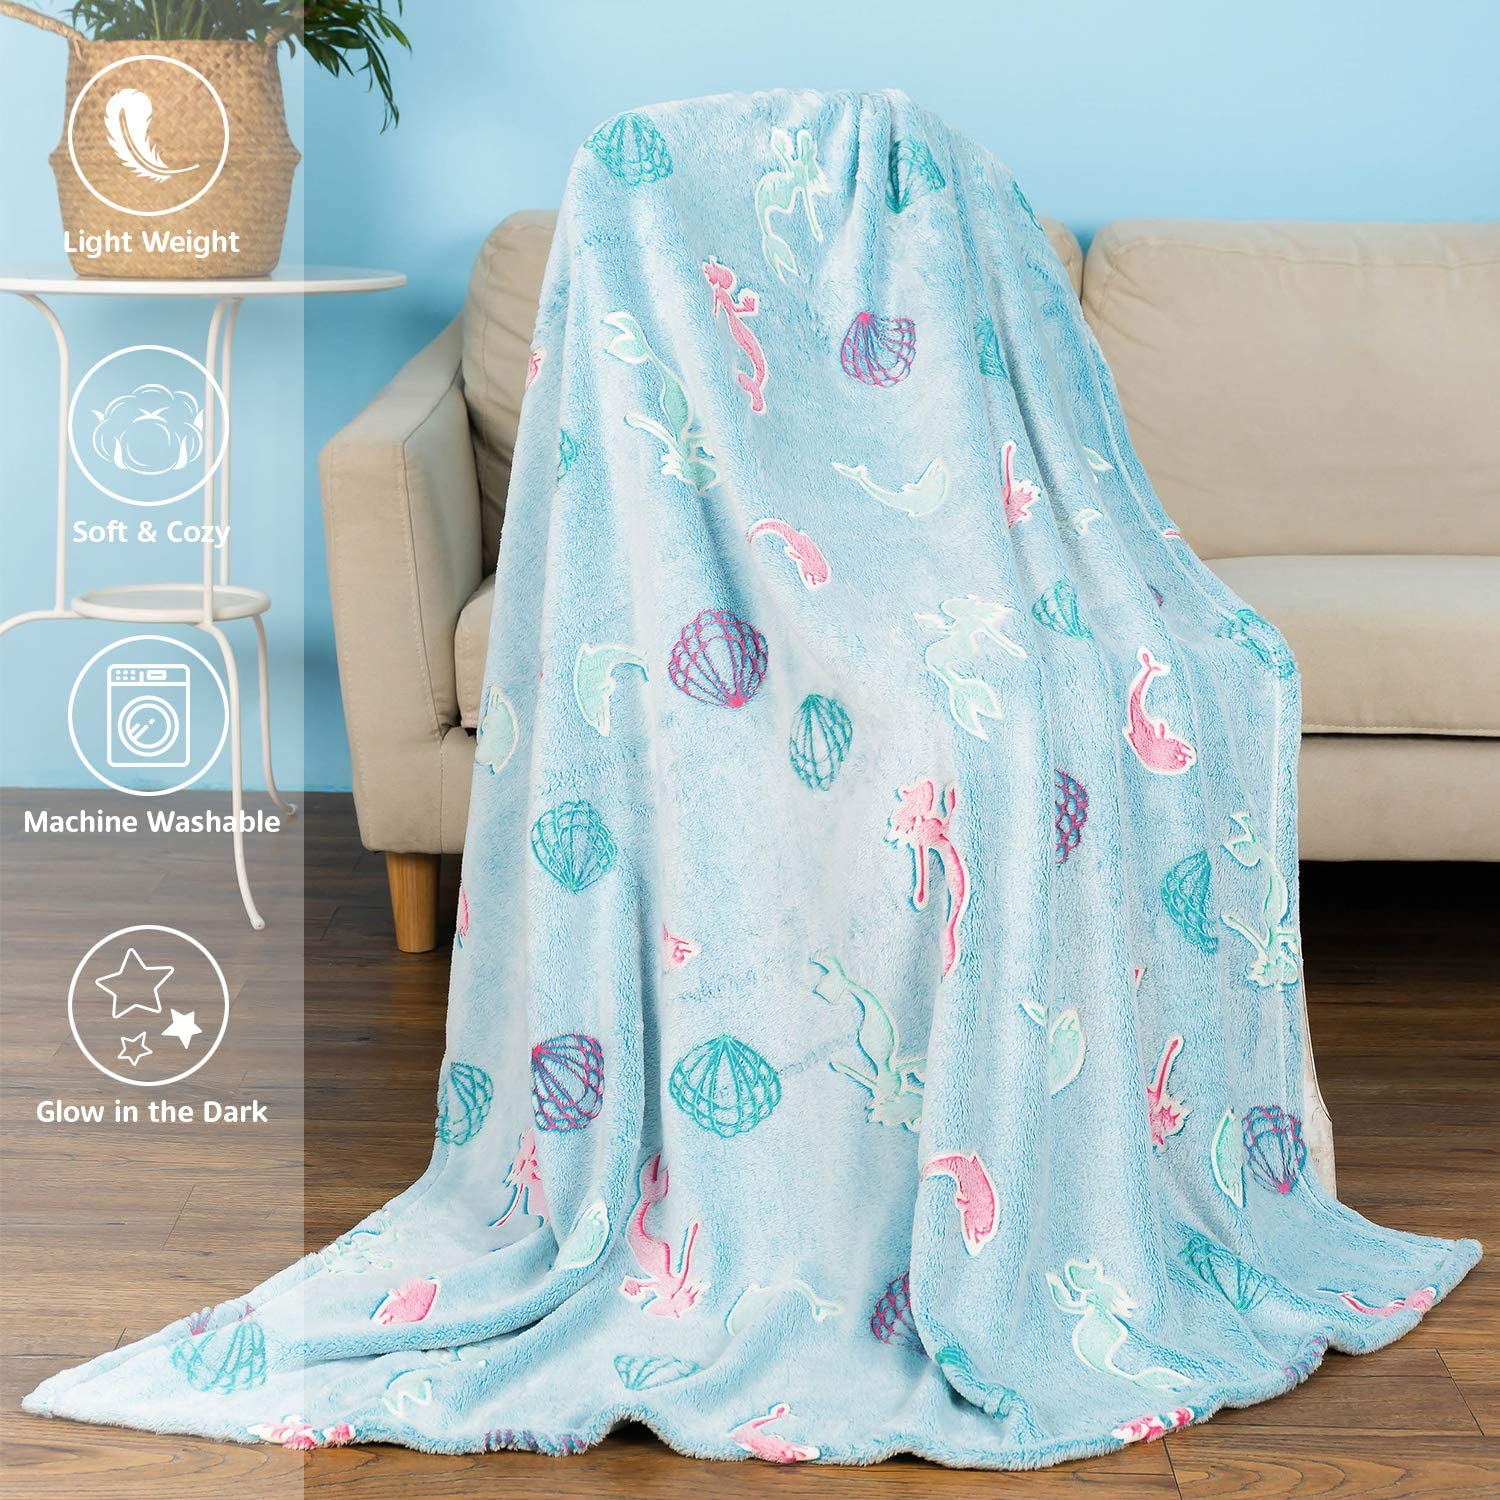 MAXYOYO Mermaid Throw Blanket Glow in Dark Soft Glowing Fluffy Blankets All Seasons Fleece Blankets and Throws Mermaid Personalized Gift for Girls 50 x 60 Inches